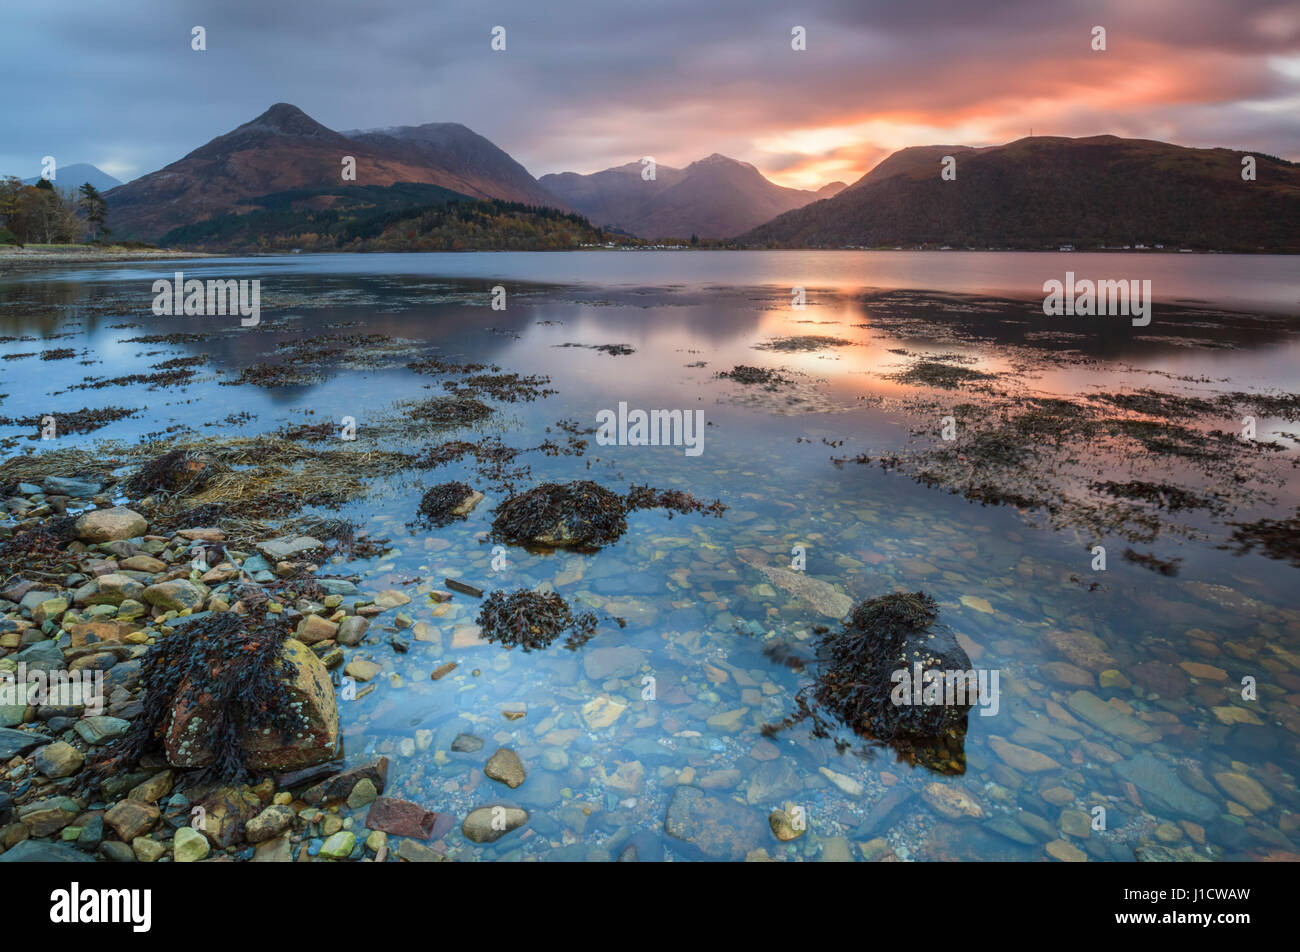 Loch Leven in the Scottish Highlands - Stock Image